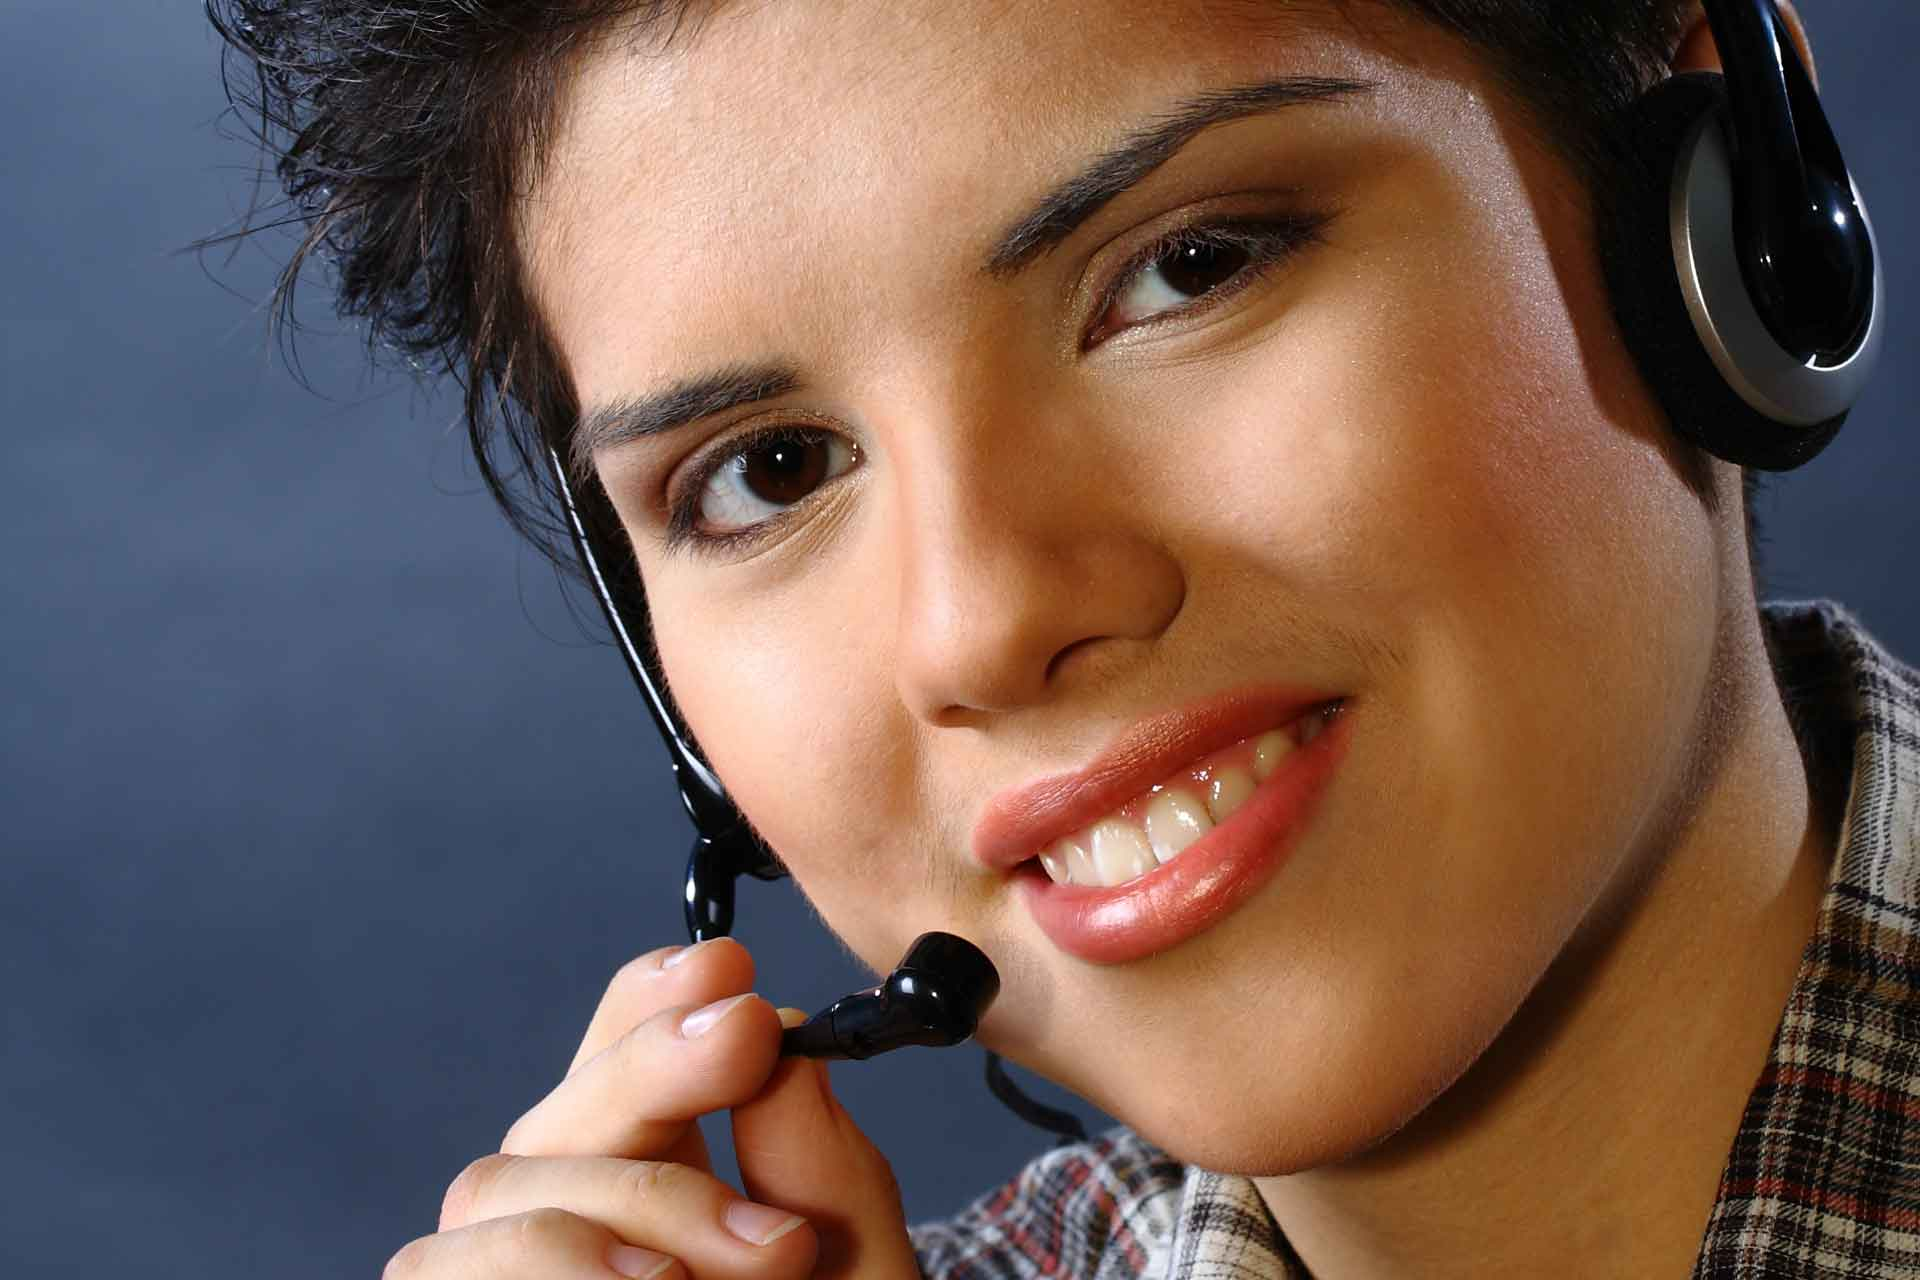 Teen Link Phone Worker